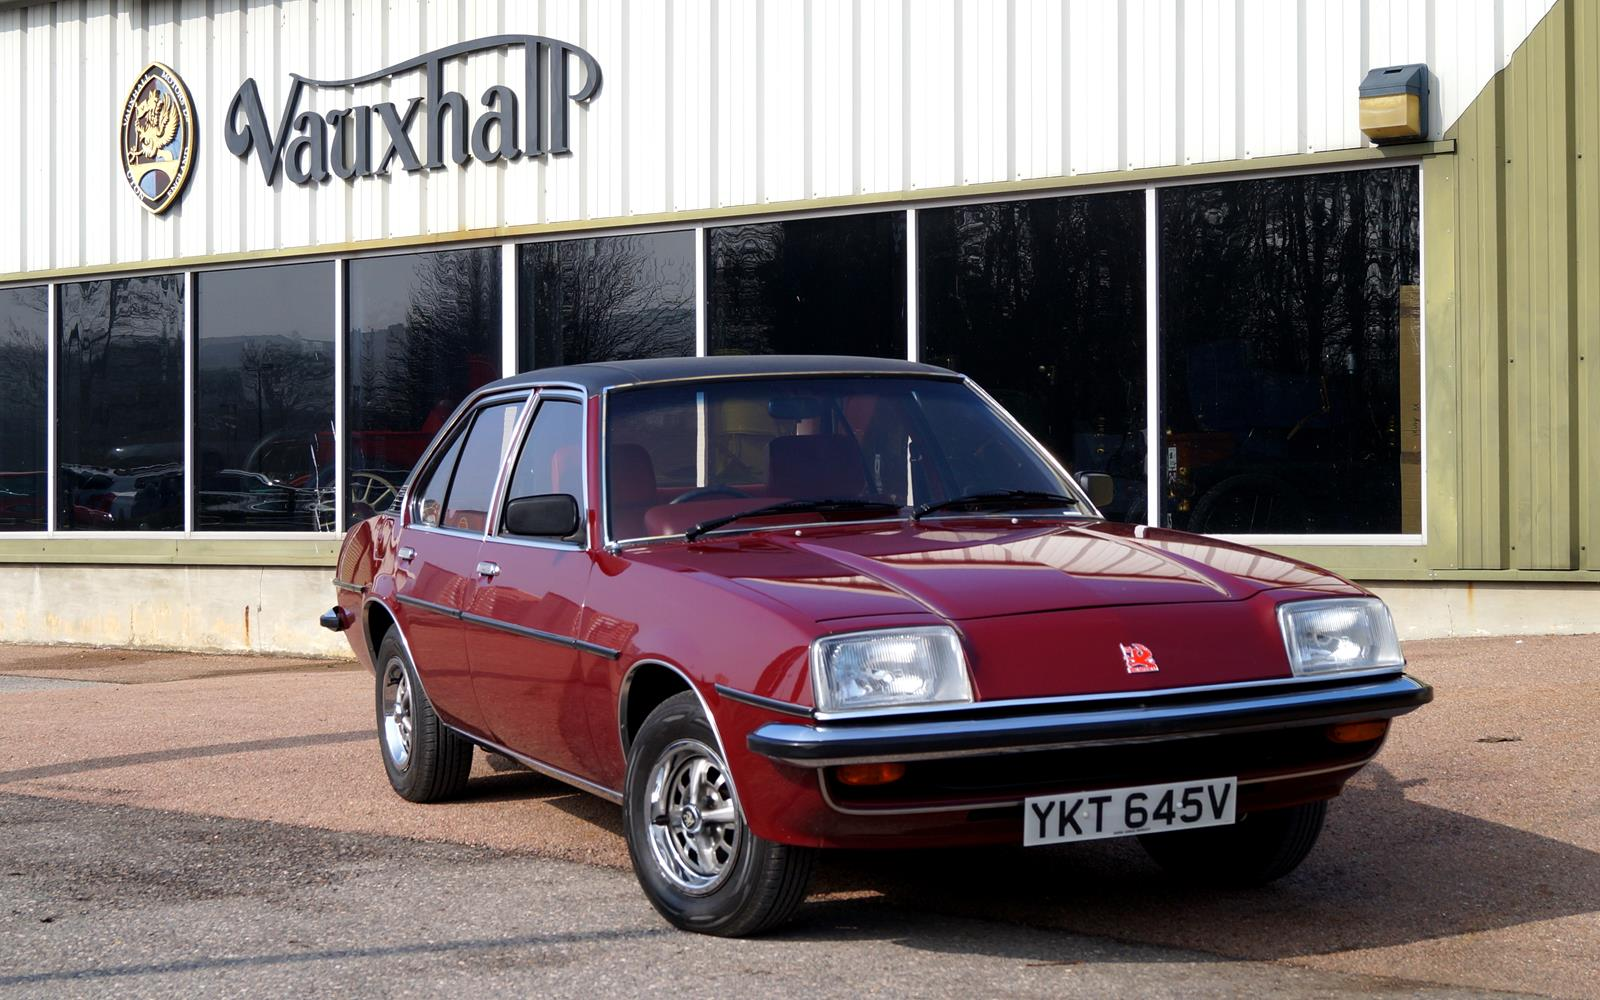 Vauxhall Cavalier Mk1 1981 Front Front Seat Driver